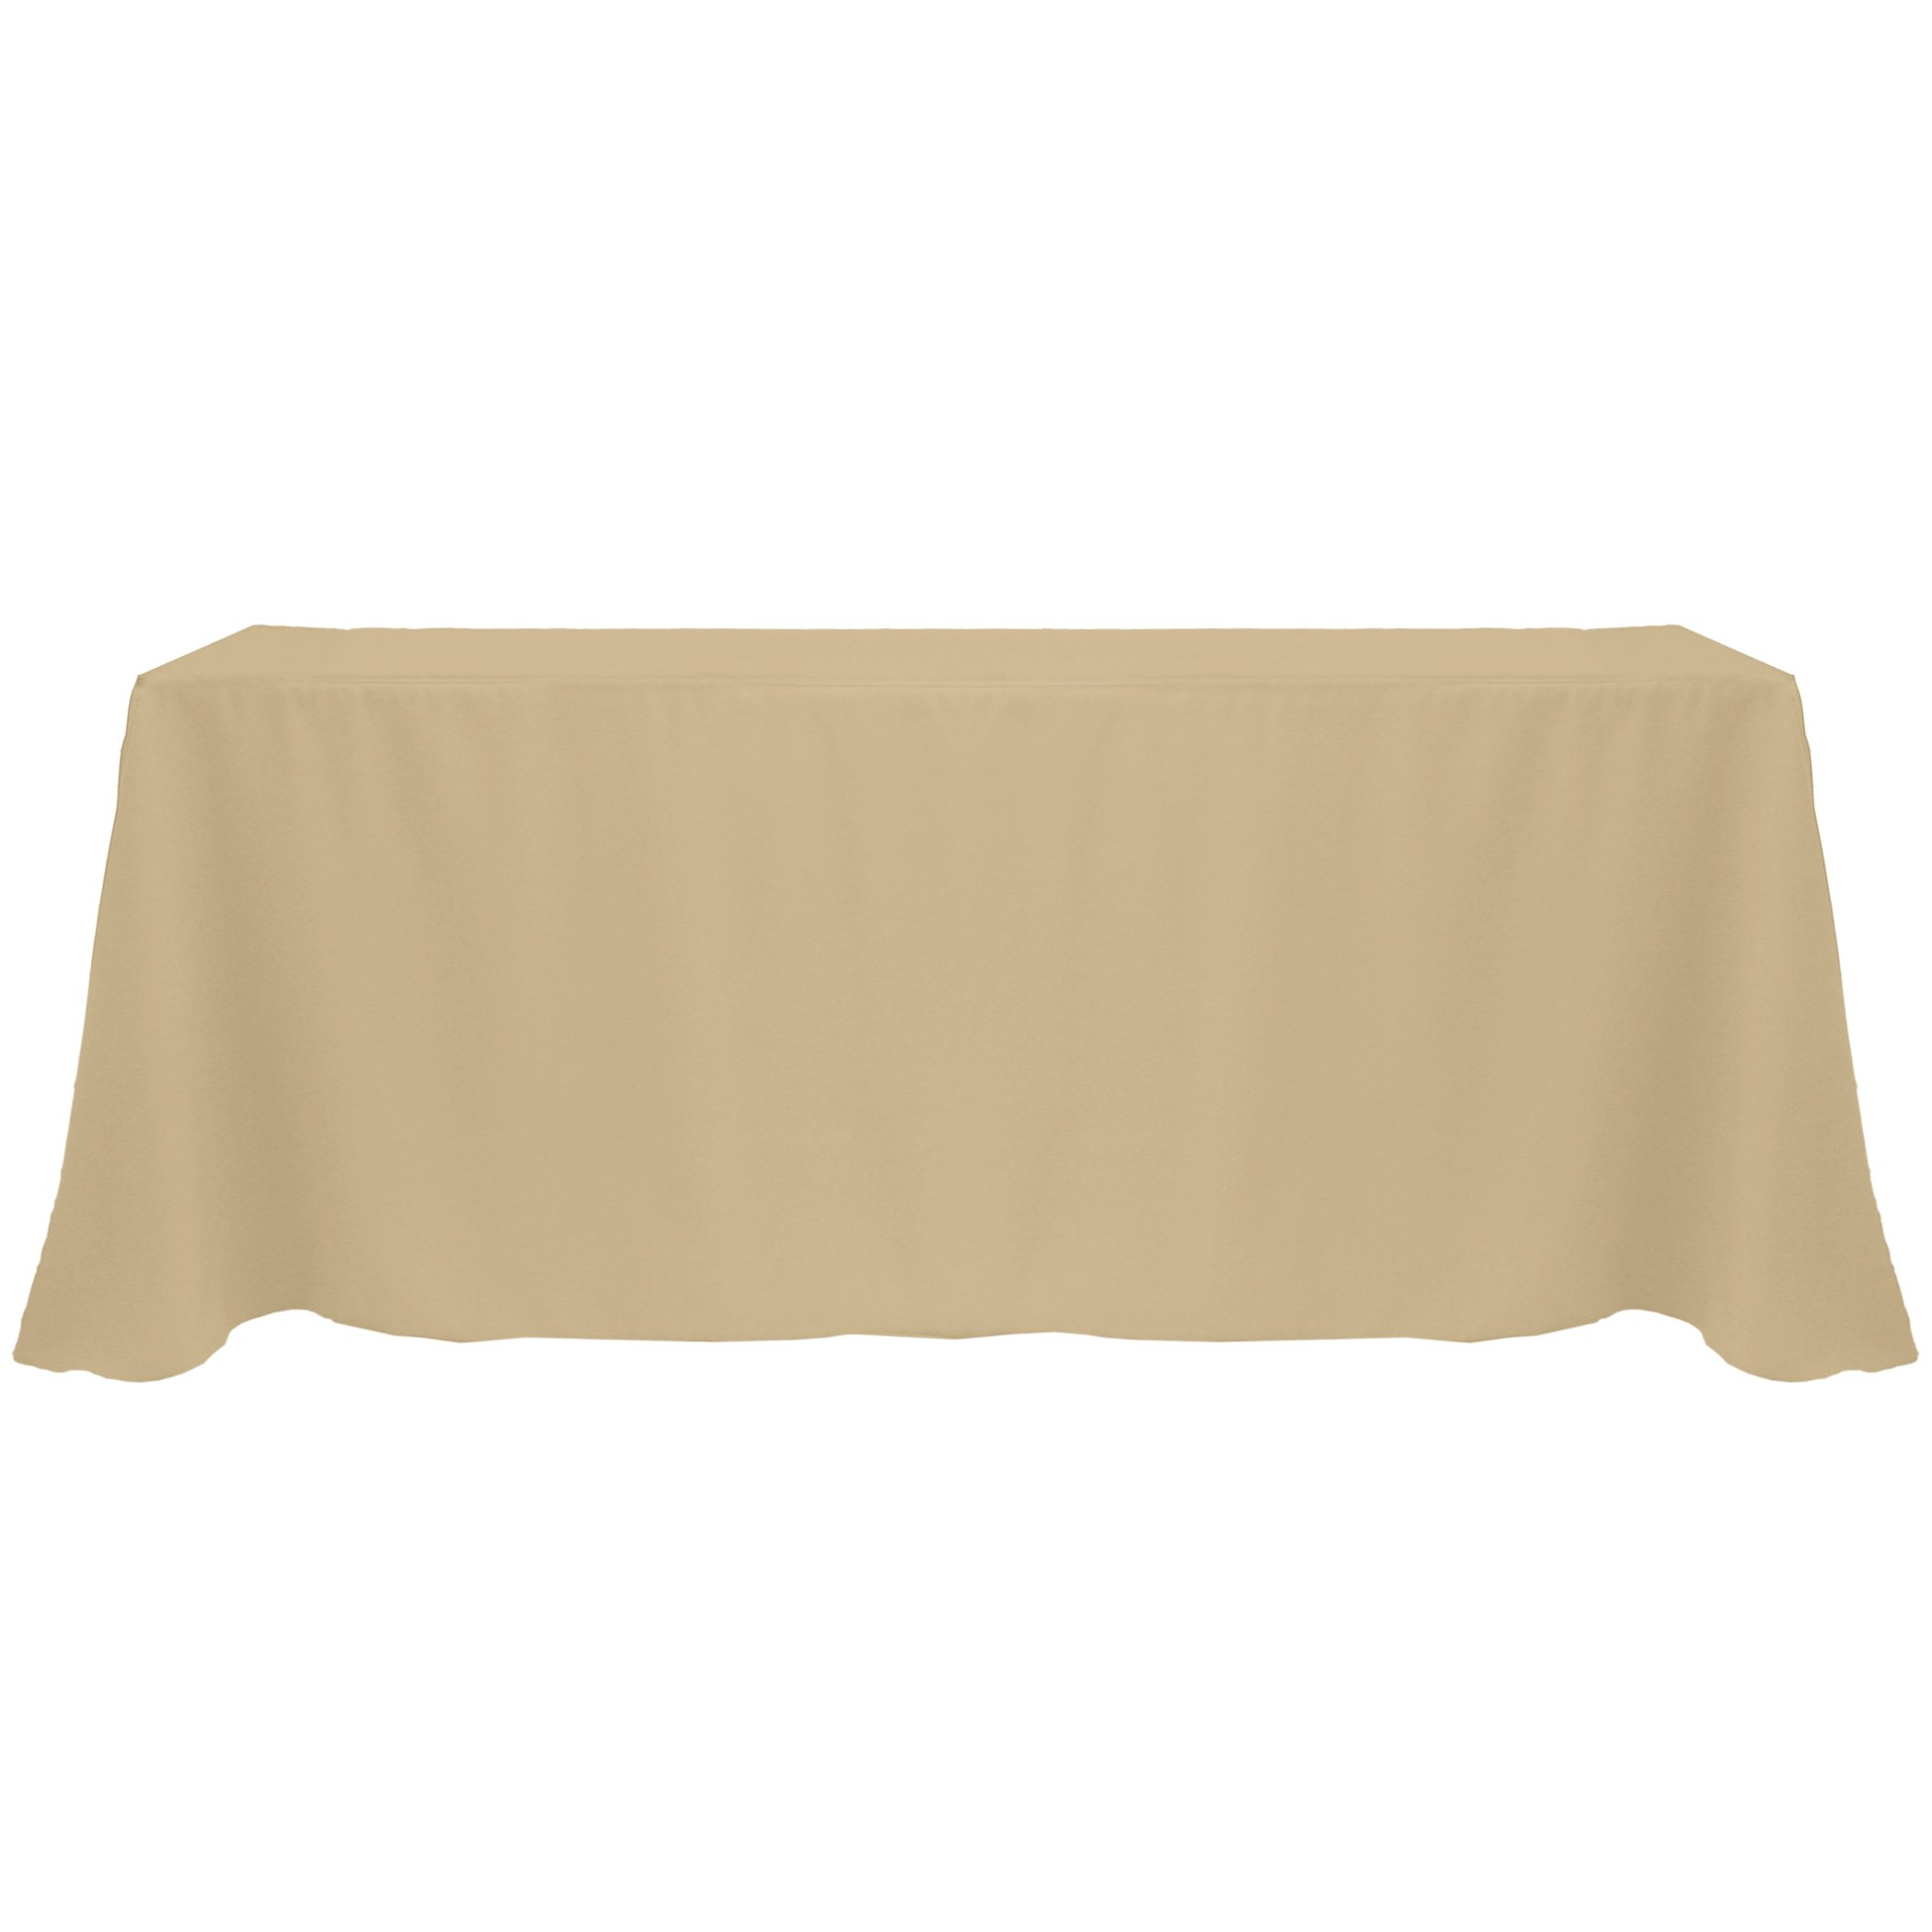 Ultimate Textile (10 Pack) 90 x 132-Inch Rectangular Polyester Linen Tablecloth with Rounded Corners - for Wedding, Restaurant or Banquet use, Camel Light Brown by Ultimate Textile